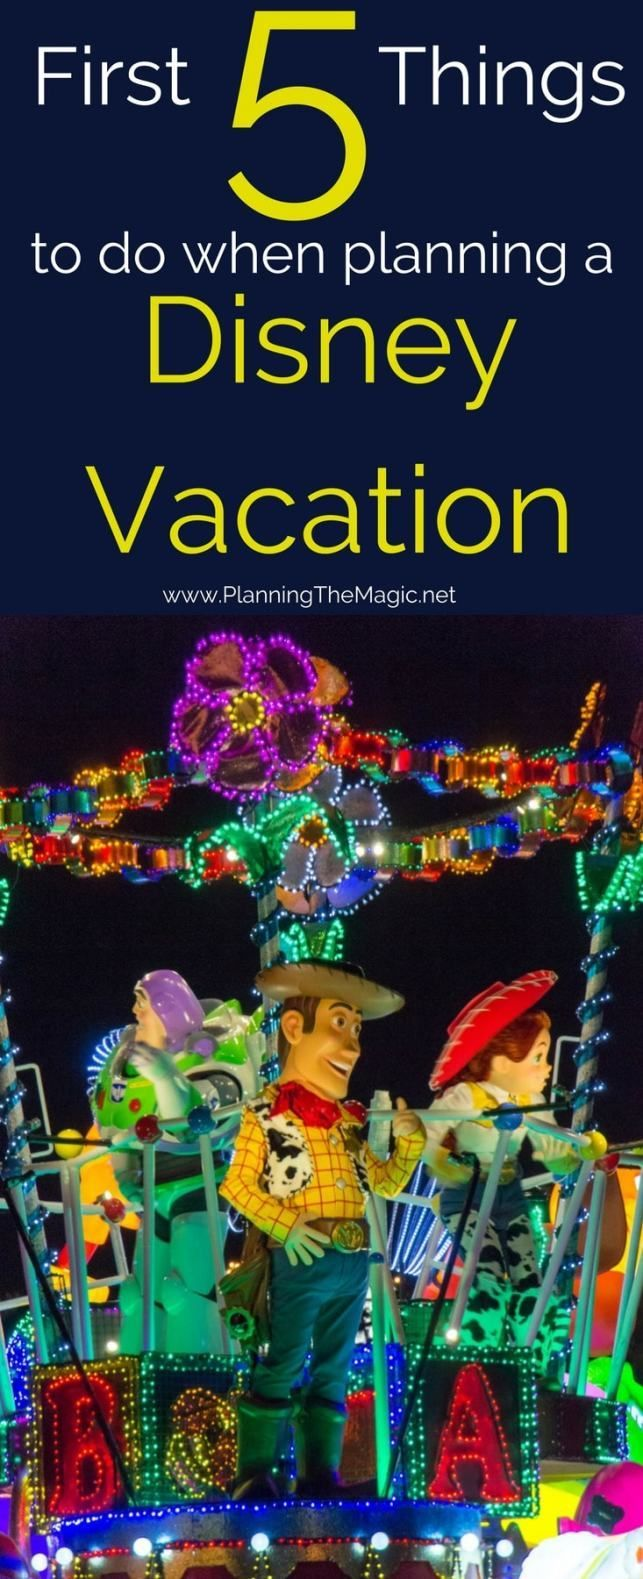 First 5 Things to do to Make Planning a Disney Vacation Simple| Don't get overwhelmed by all the tips and tricks out there.  Start with these 5 steps first.  More information at www.planningthemagic.net